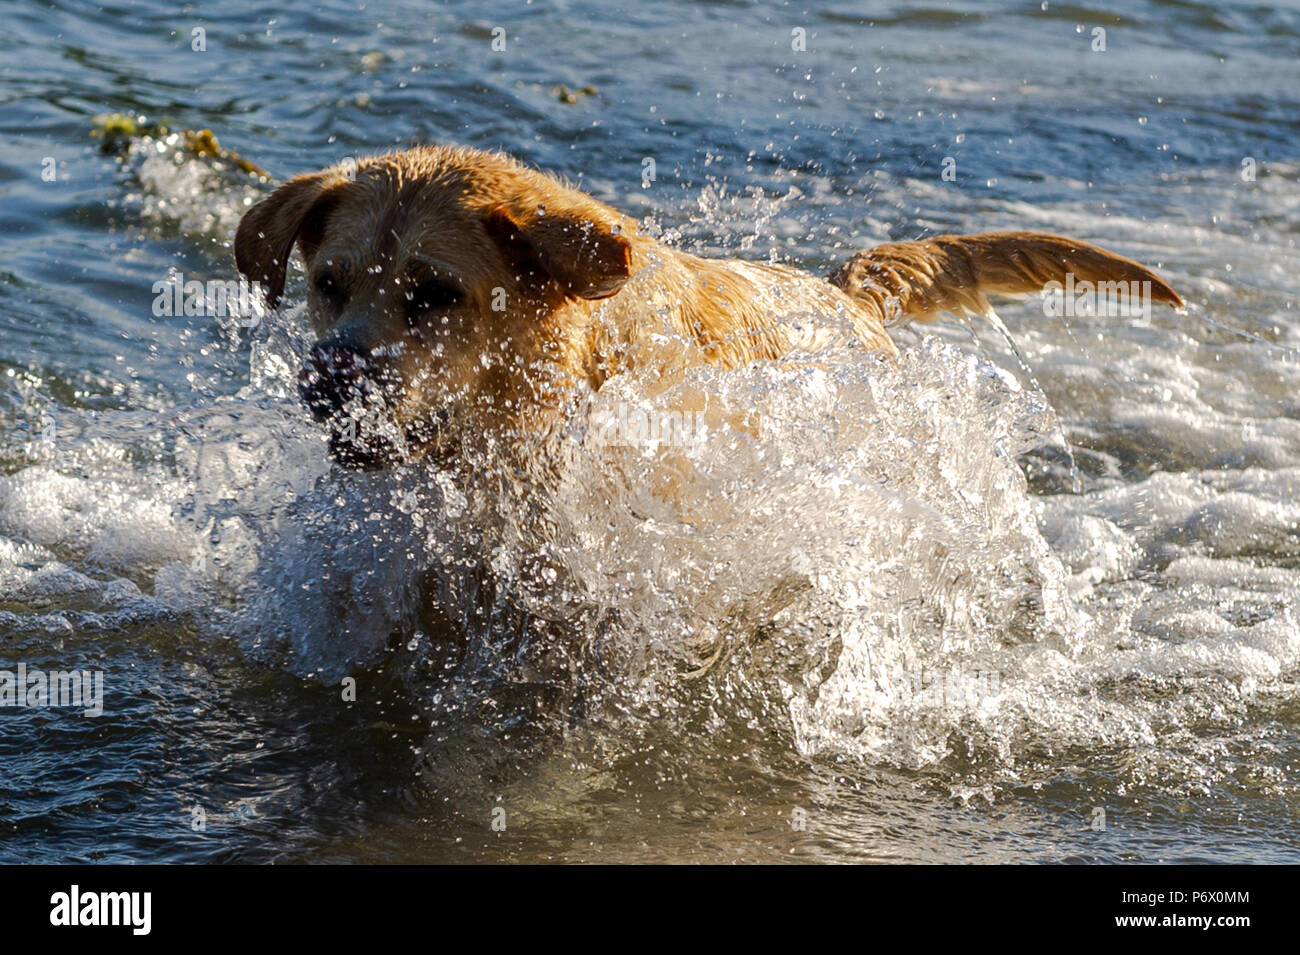 Schull, West Cork, Ireland . 3rd July, 2018. Lucy, the 7 year old Golden Labrador, plays in the sea this evening. The heatwave shows no sign of ending with temperatures forecast to be in the high 20°'s Celsius for at least a week. Credit: Andy Gibson/Alamy Live News. - Stock Image